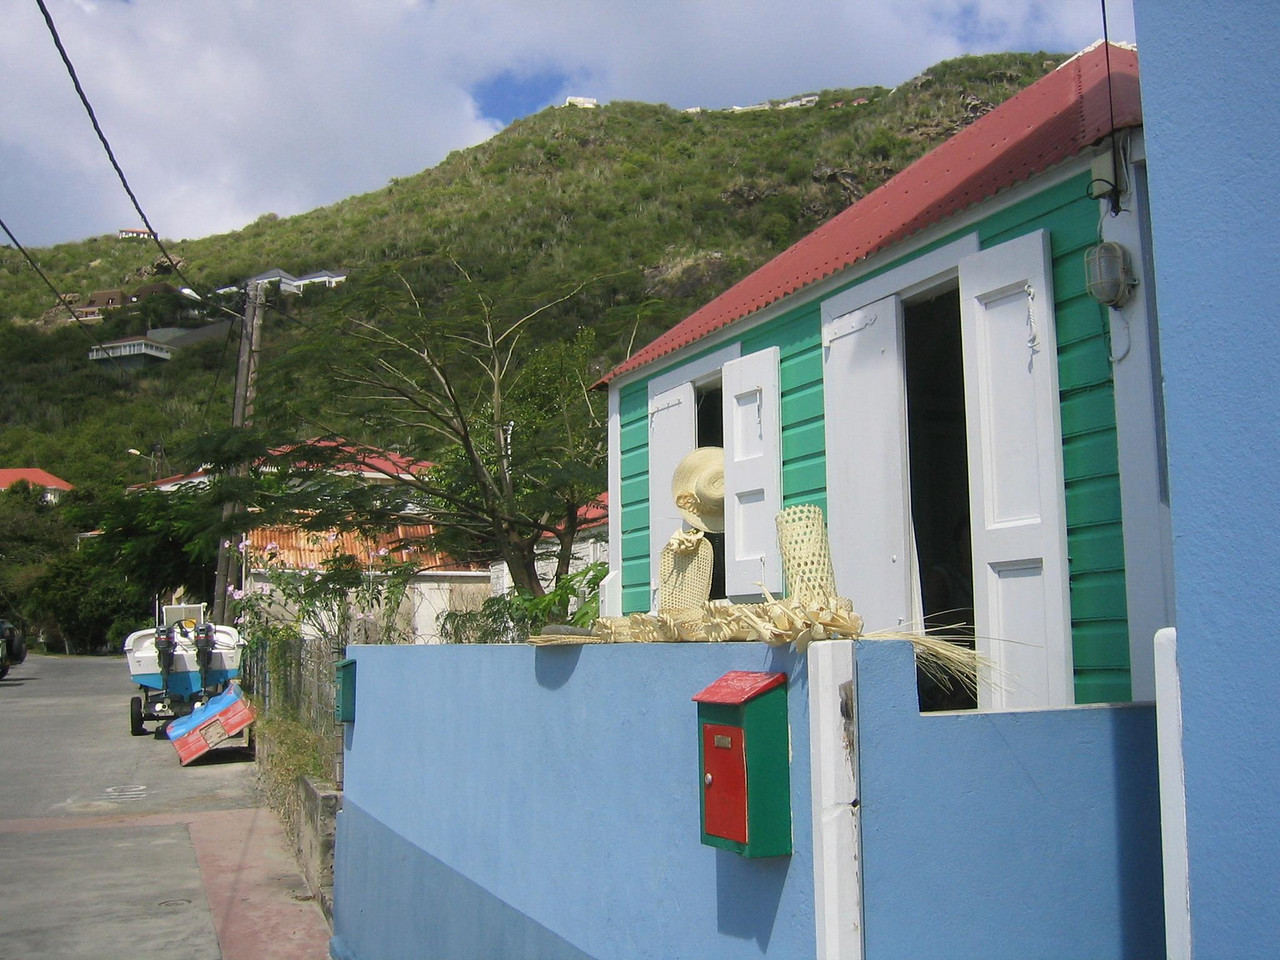 Corossol is a small village on the island where you can buy locally woven goods and enjoy the beach and slow pace.